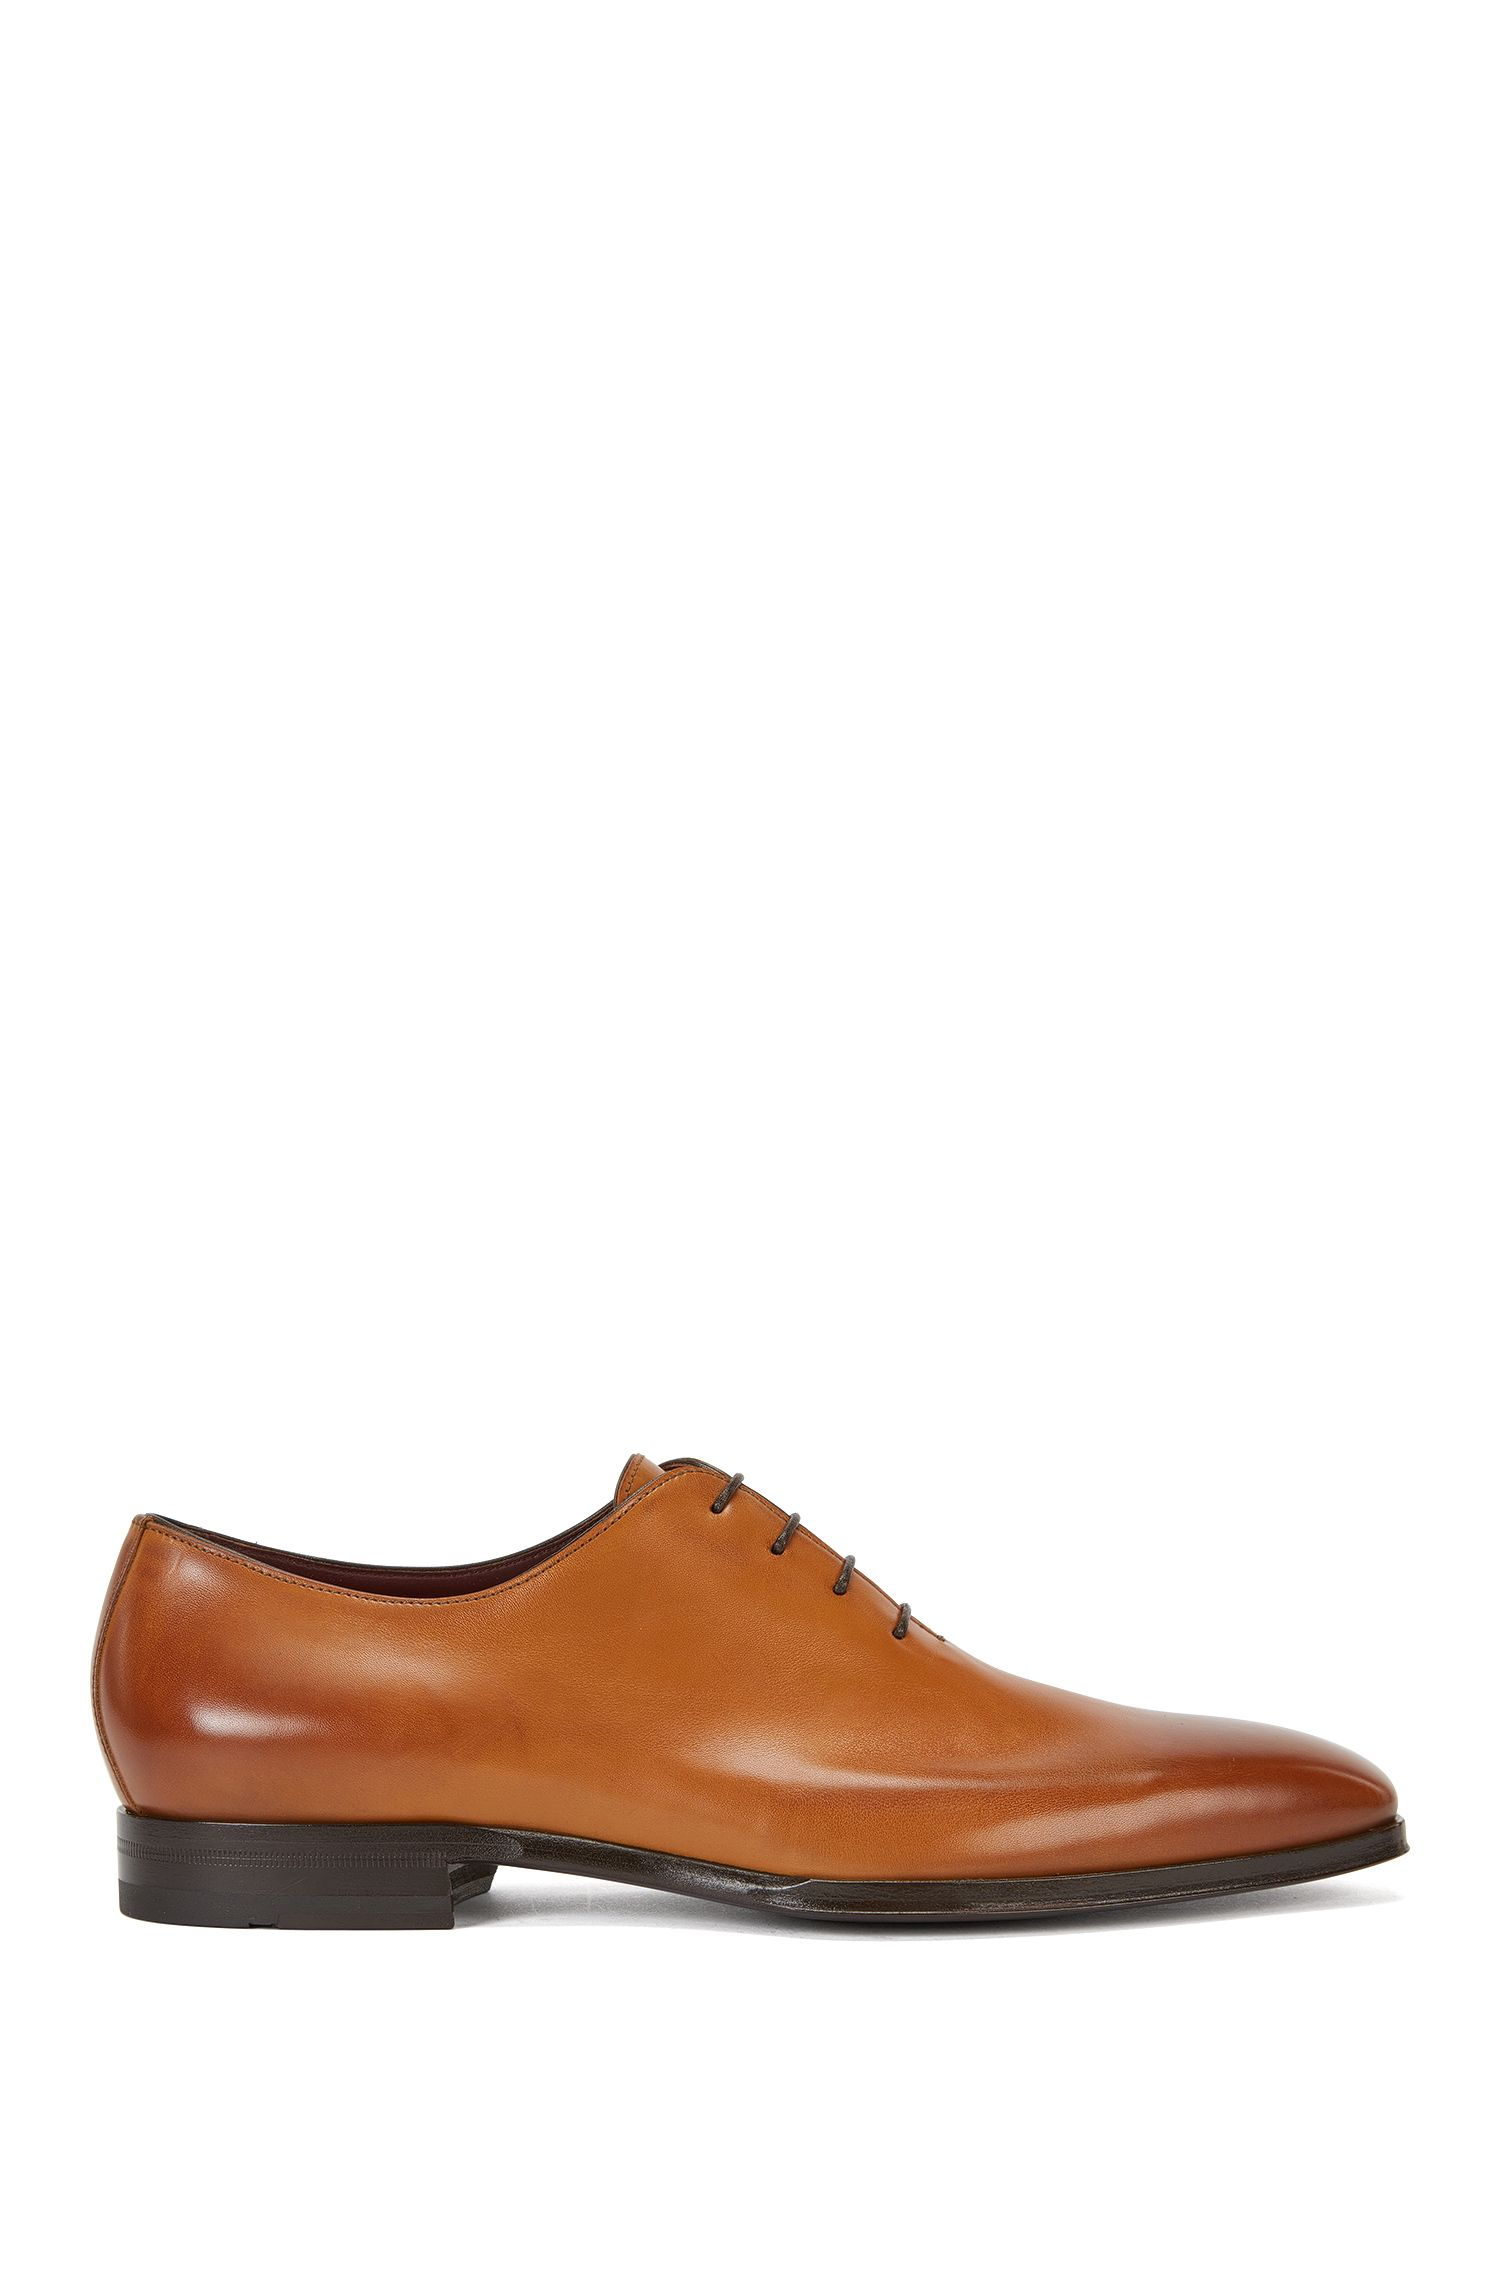 Chaussures Oxford BOSS Tailored en cuir poli